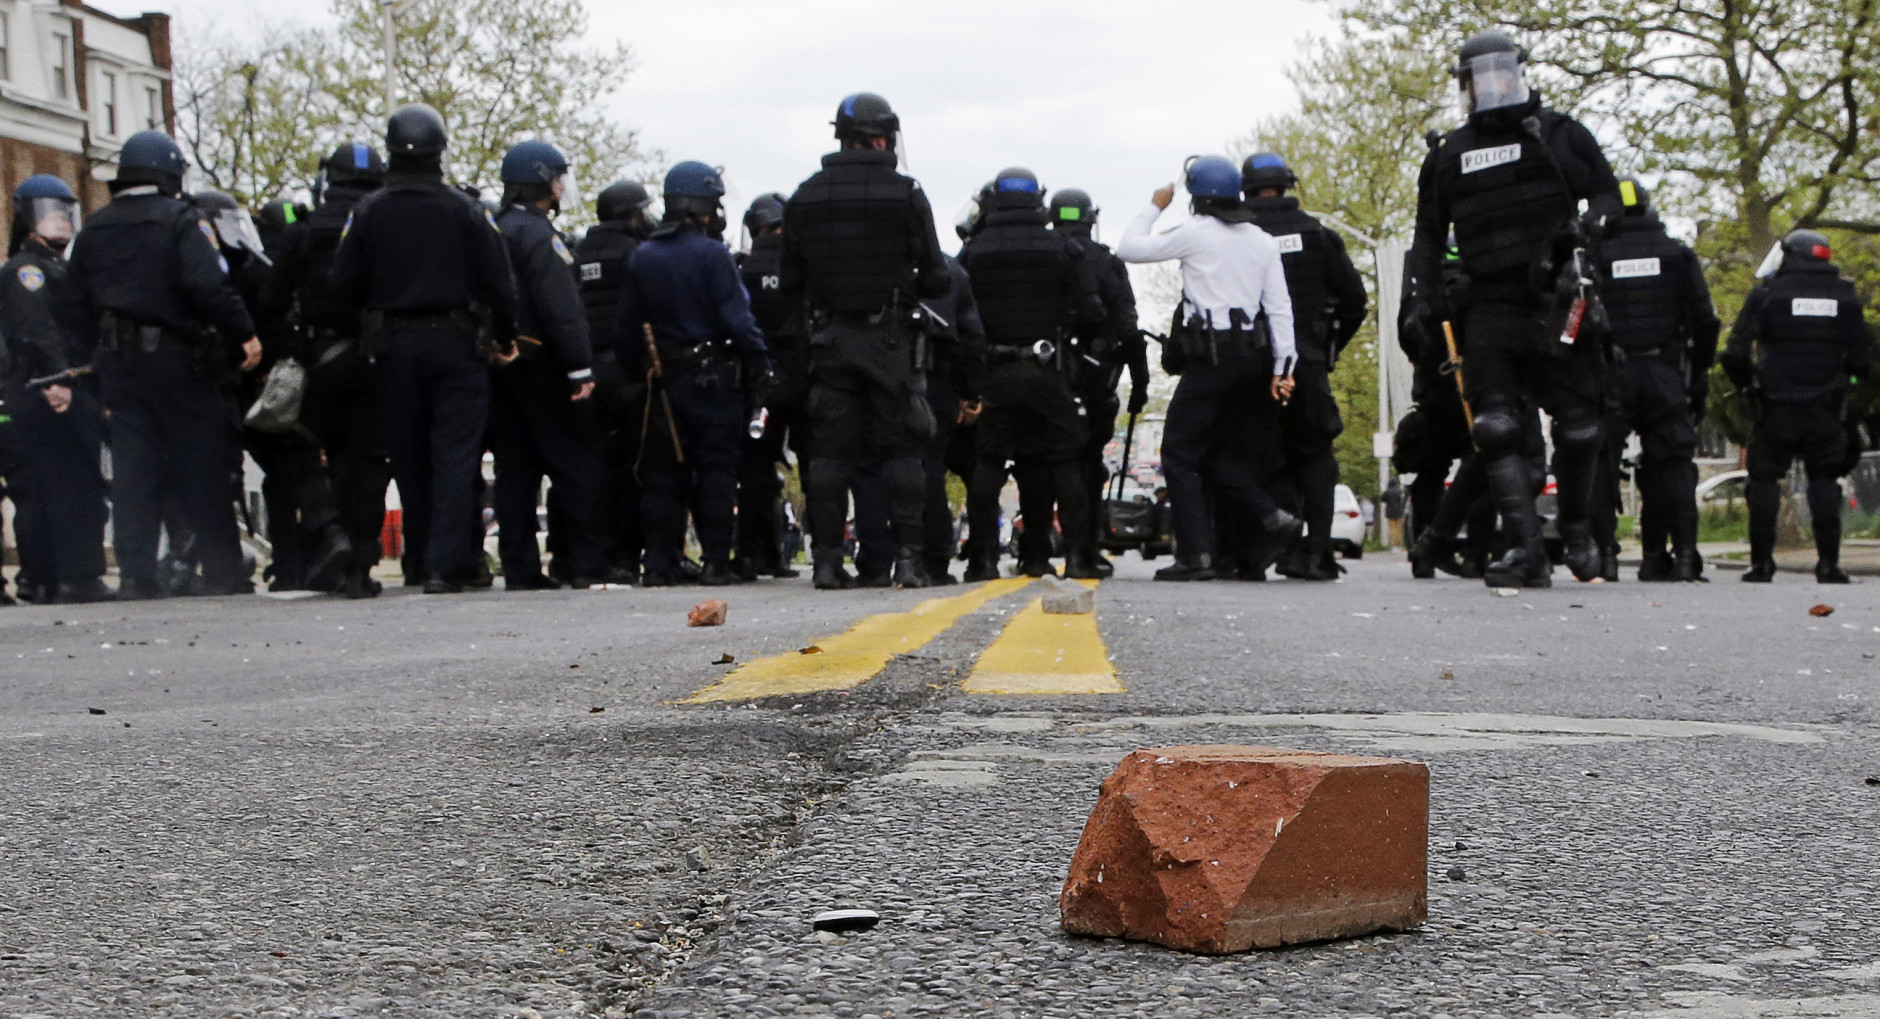 A brick sits on a street as police standby, Monday, April 27, 2015, during a skirmish with demonstrators after the funeral of Freddie Gray in Baltimore. Gray died from spinal injuries about a week after he was arrested and transported in a Baltimore Police Department van. (AP Photo/Patrick Semansky)